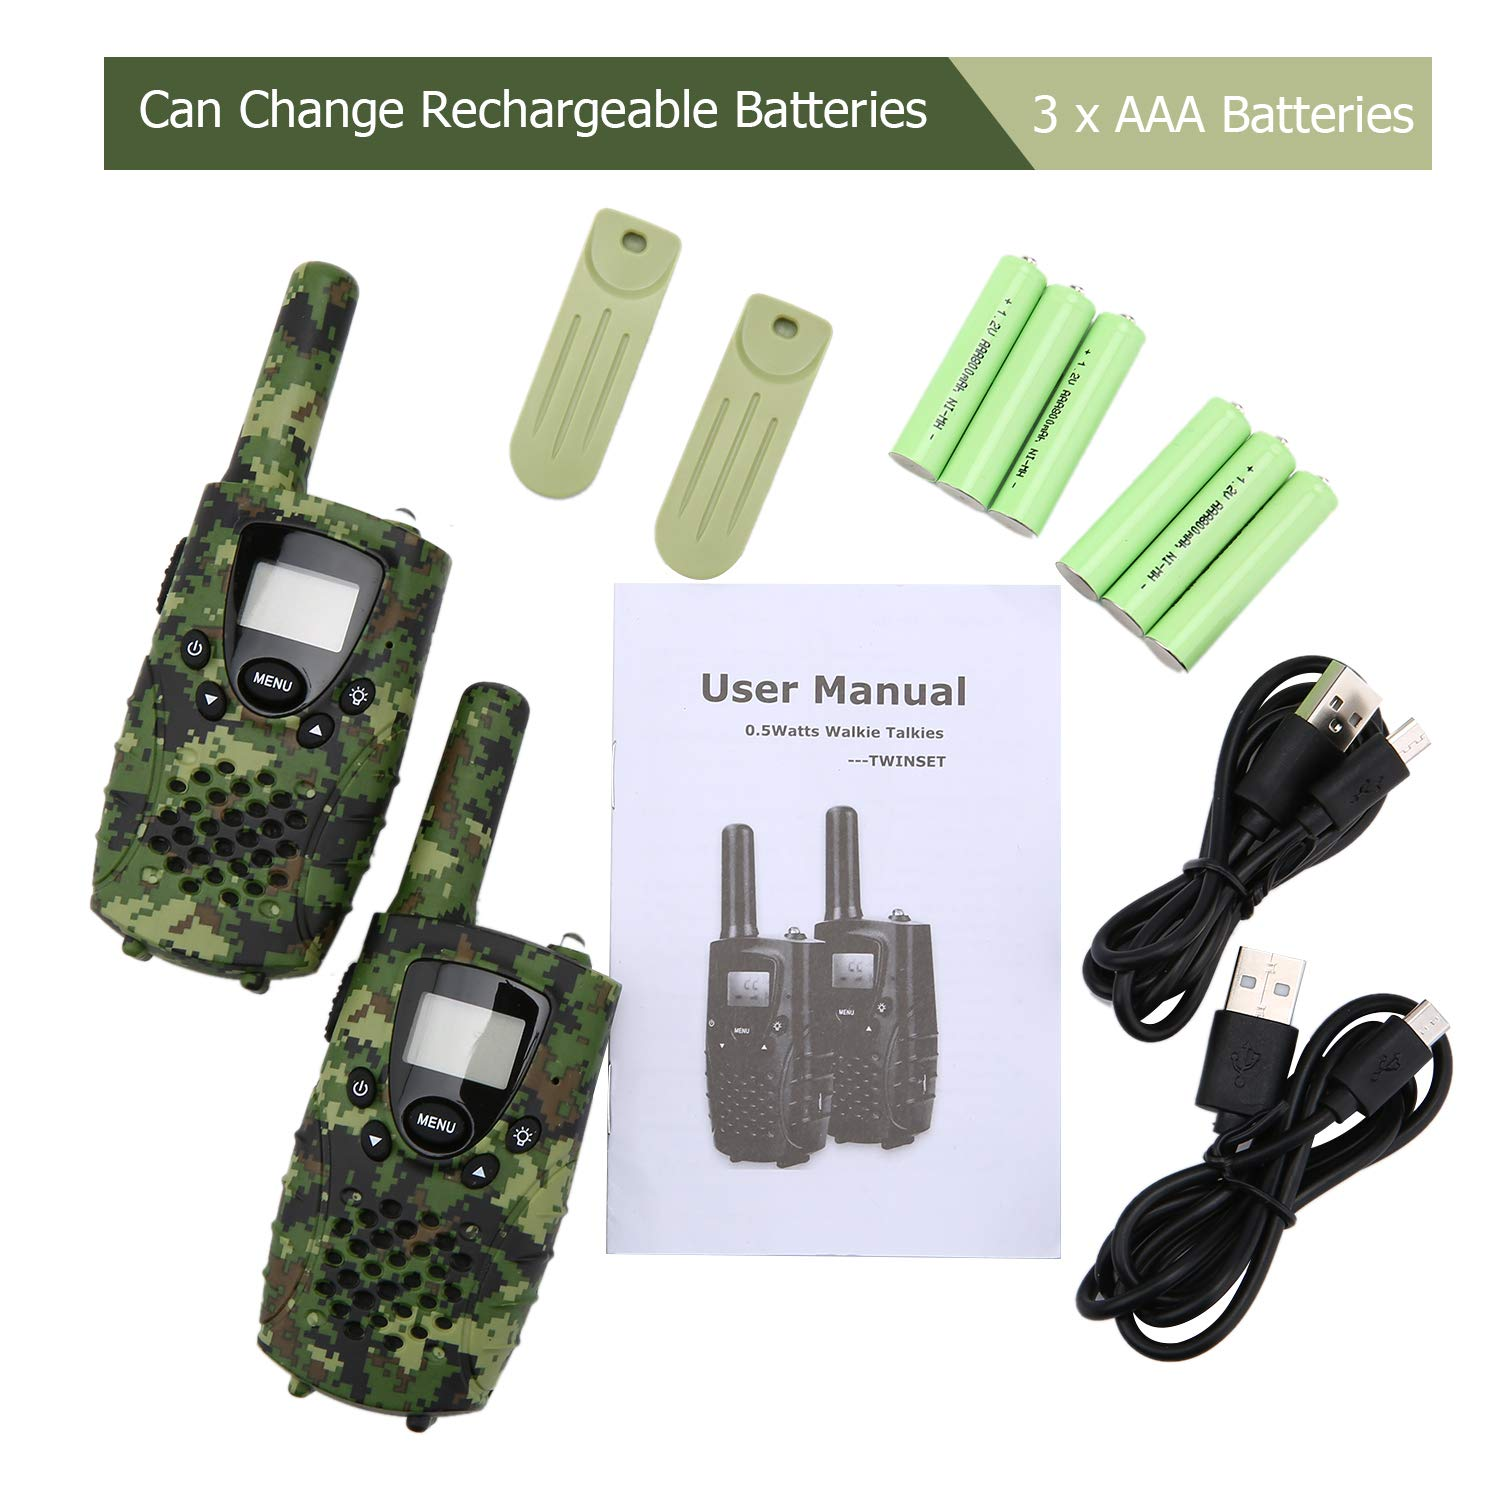 2 Pack Walkie Talkies for Adults Westayin Range Up to 4 Mile Walkie Talkies 22 Channels with Crystal Sound Long Range T4801 Kids Walkie Talkies with Vox-Hands Free Green Camo